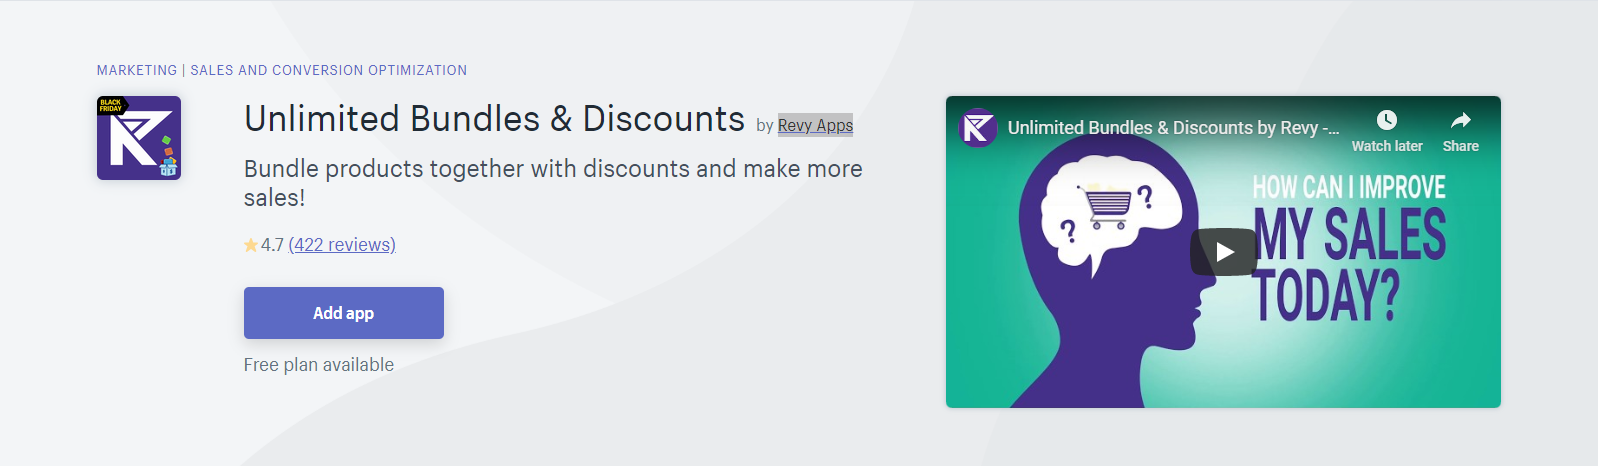 Unlimited Bundles & Discounts Shopify App